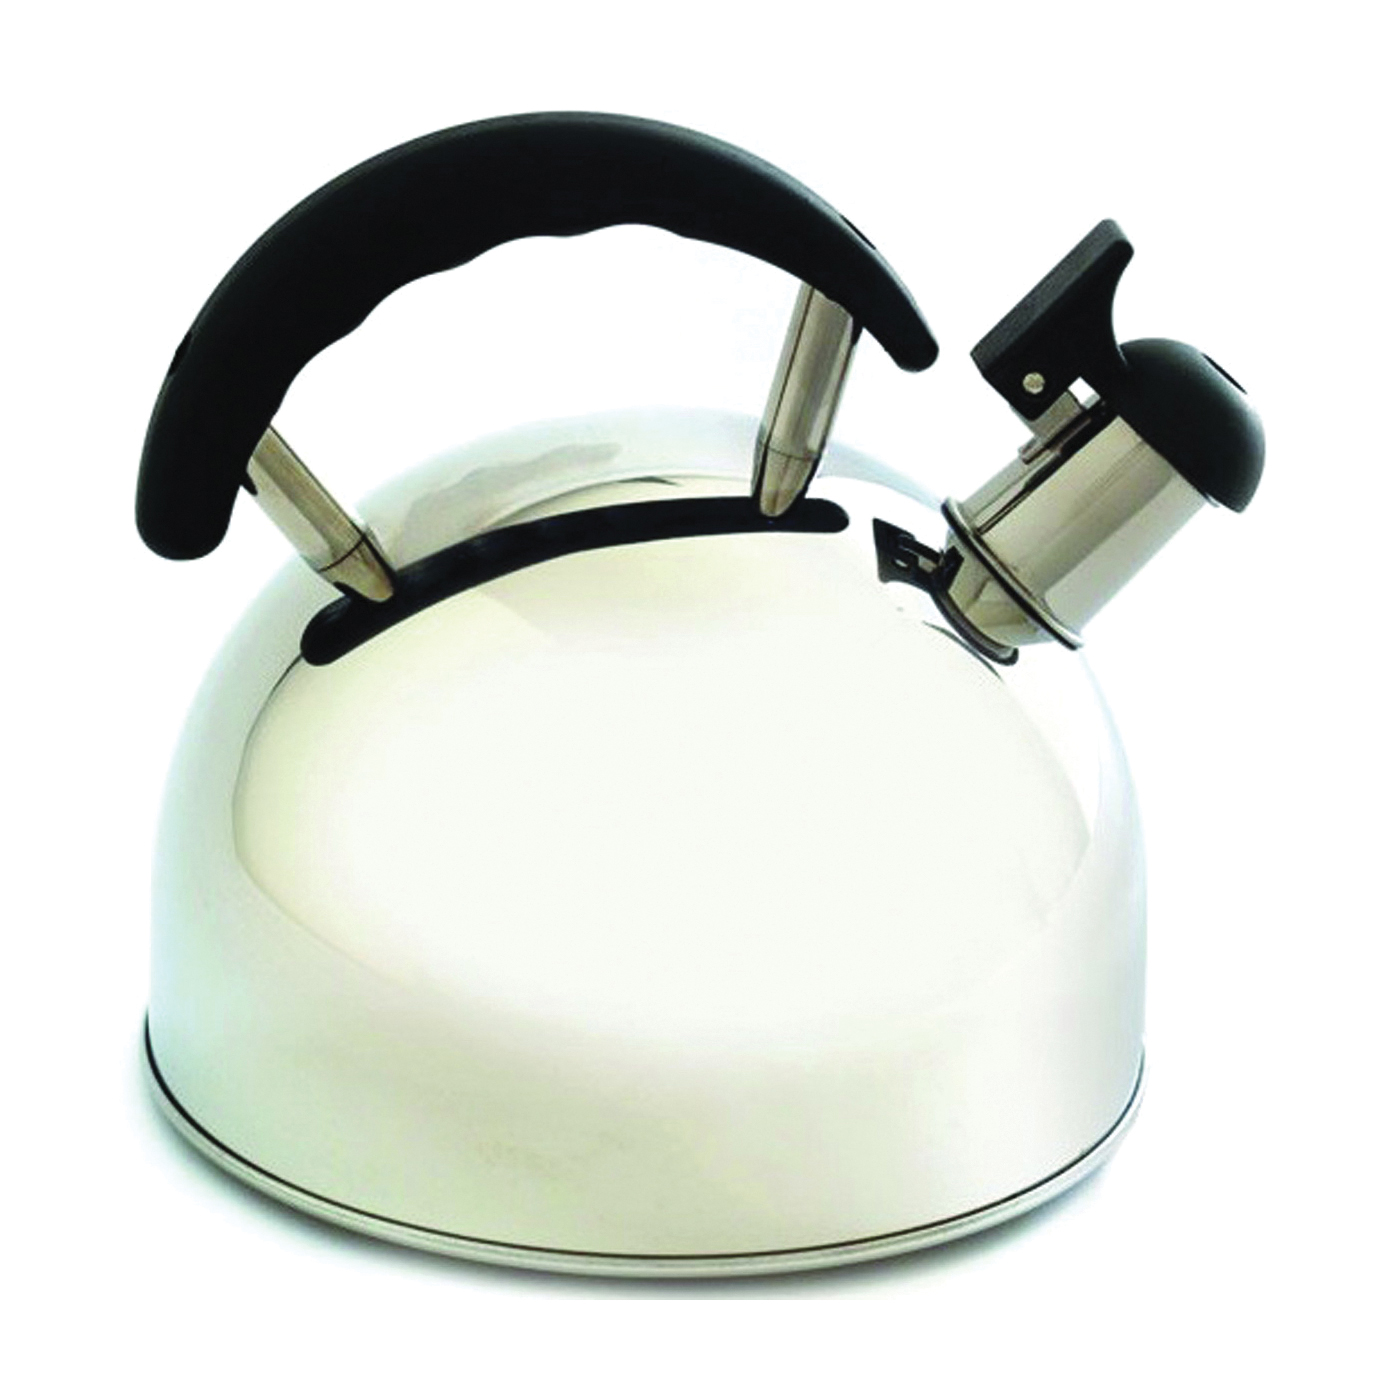 Picture of NORPRO 5627 Whistling Tea Kettle, 2.5 L Capacity, Stay-Cool Handle, Stainless Steel